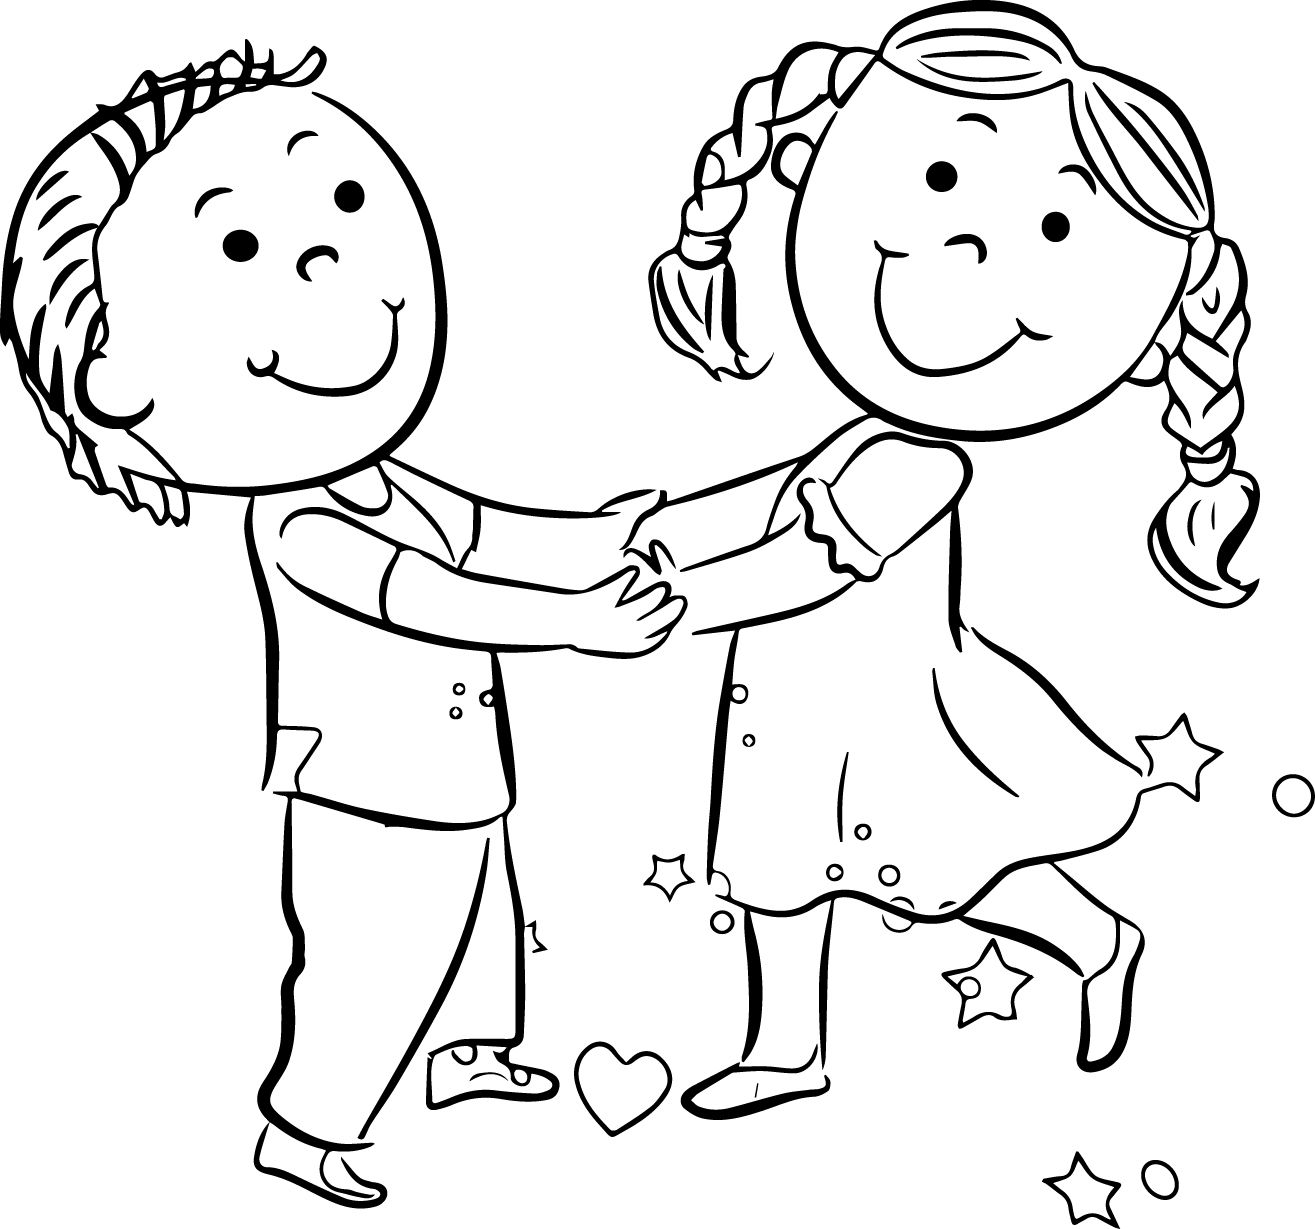 Children Coloring Pages Coloring Pages For Kids Coloring Pages For Girls Coloring For Kids